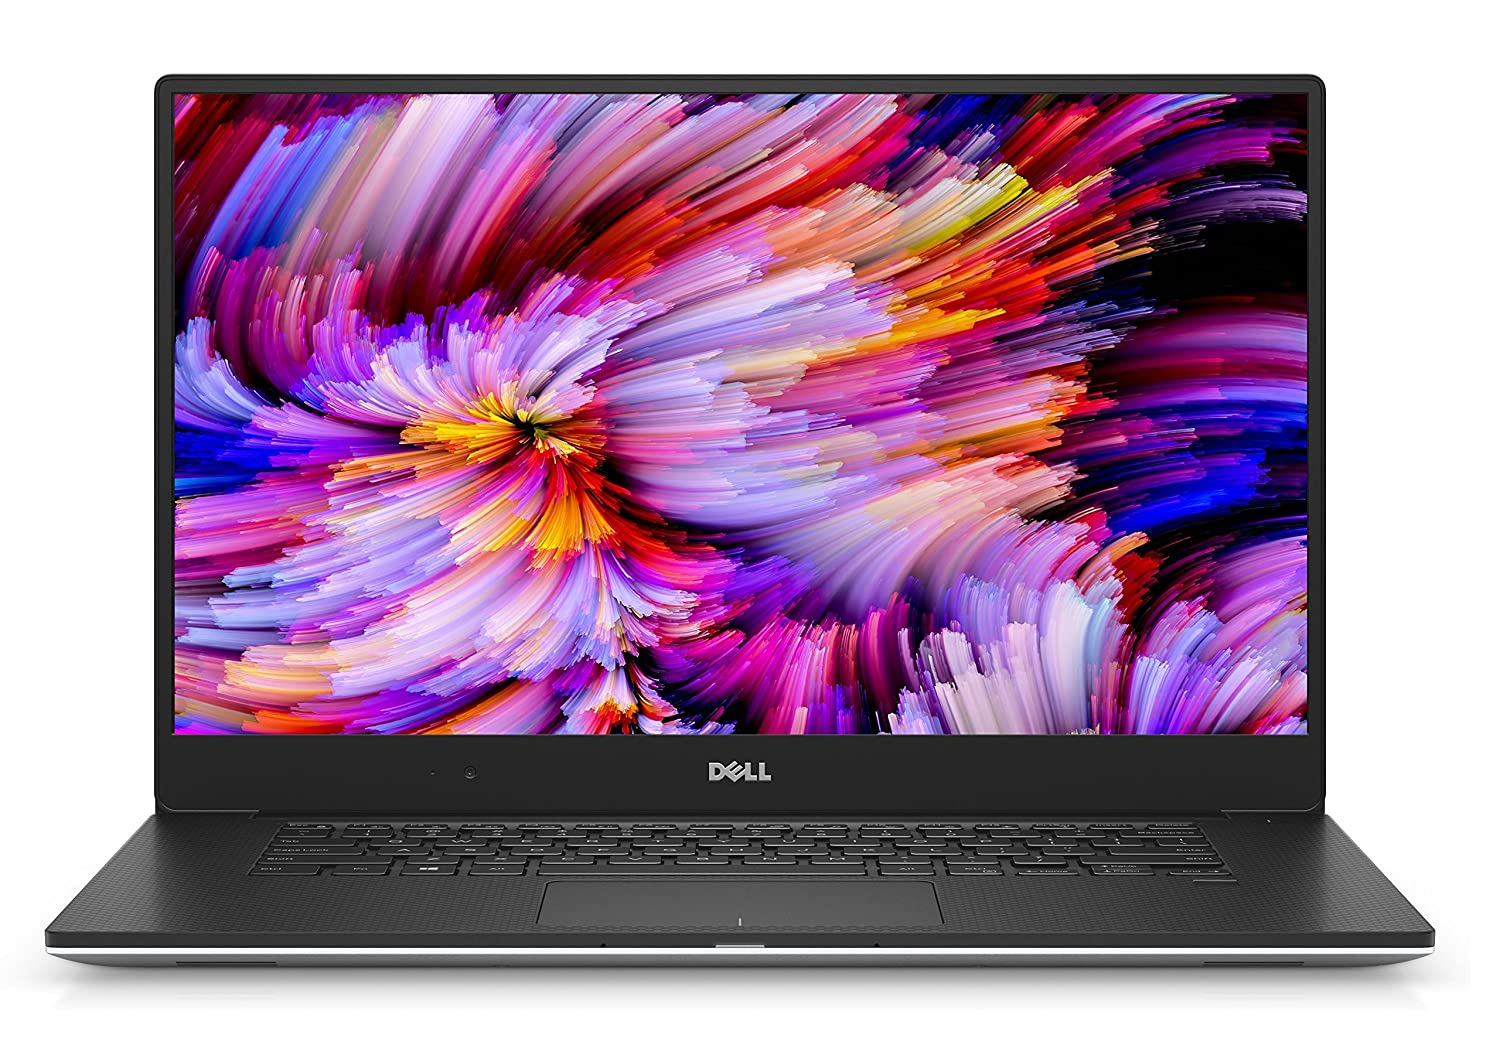 Dell XPS 15 15 6 Inch QHD Touch Laptop - (Silver) (Intel Core i7-7700HQ, 16  GB RAM, 512 GB SSD, GTX 1050 4G Graphics Card, Windows 10)